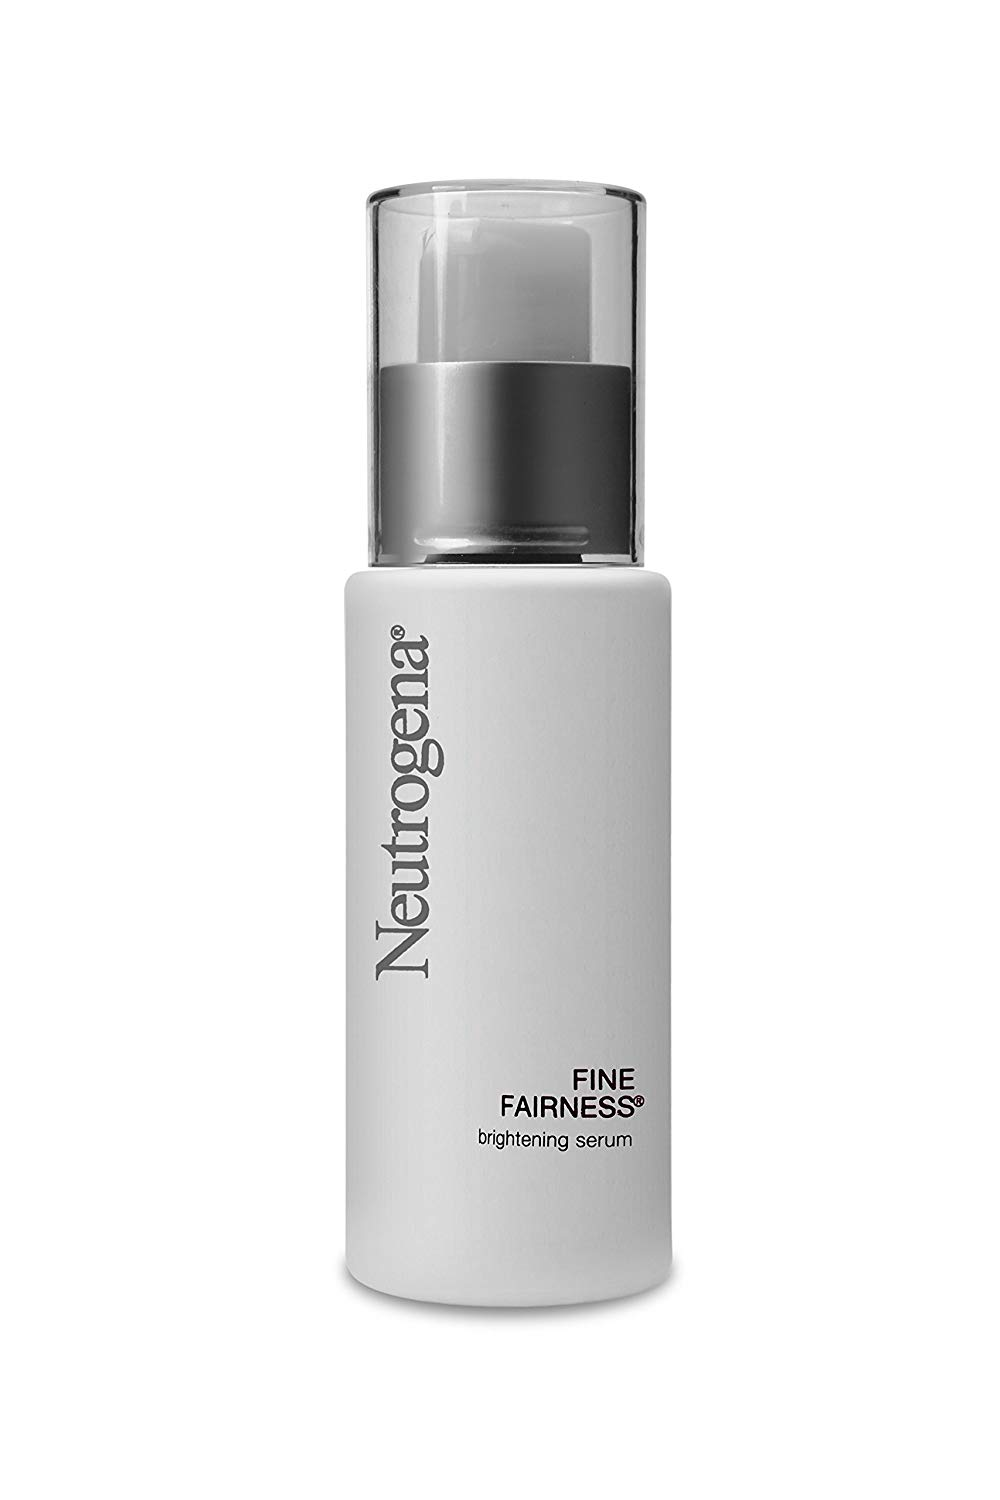 Neutrogena Brightening Fine Fairness Serum